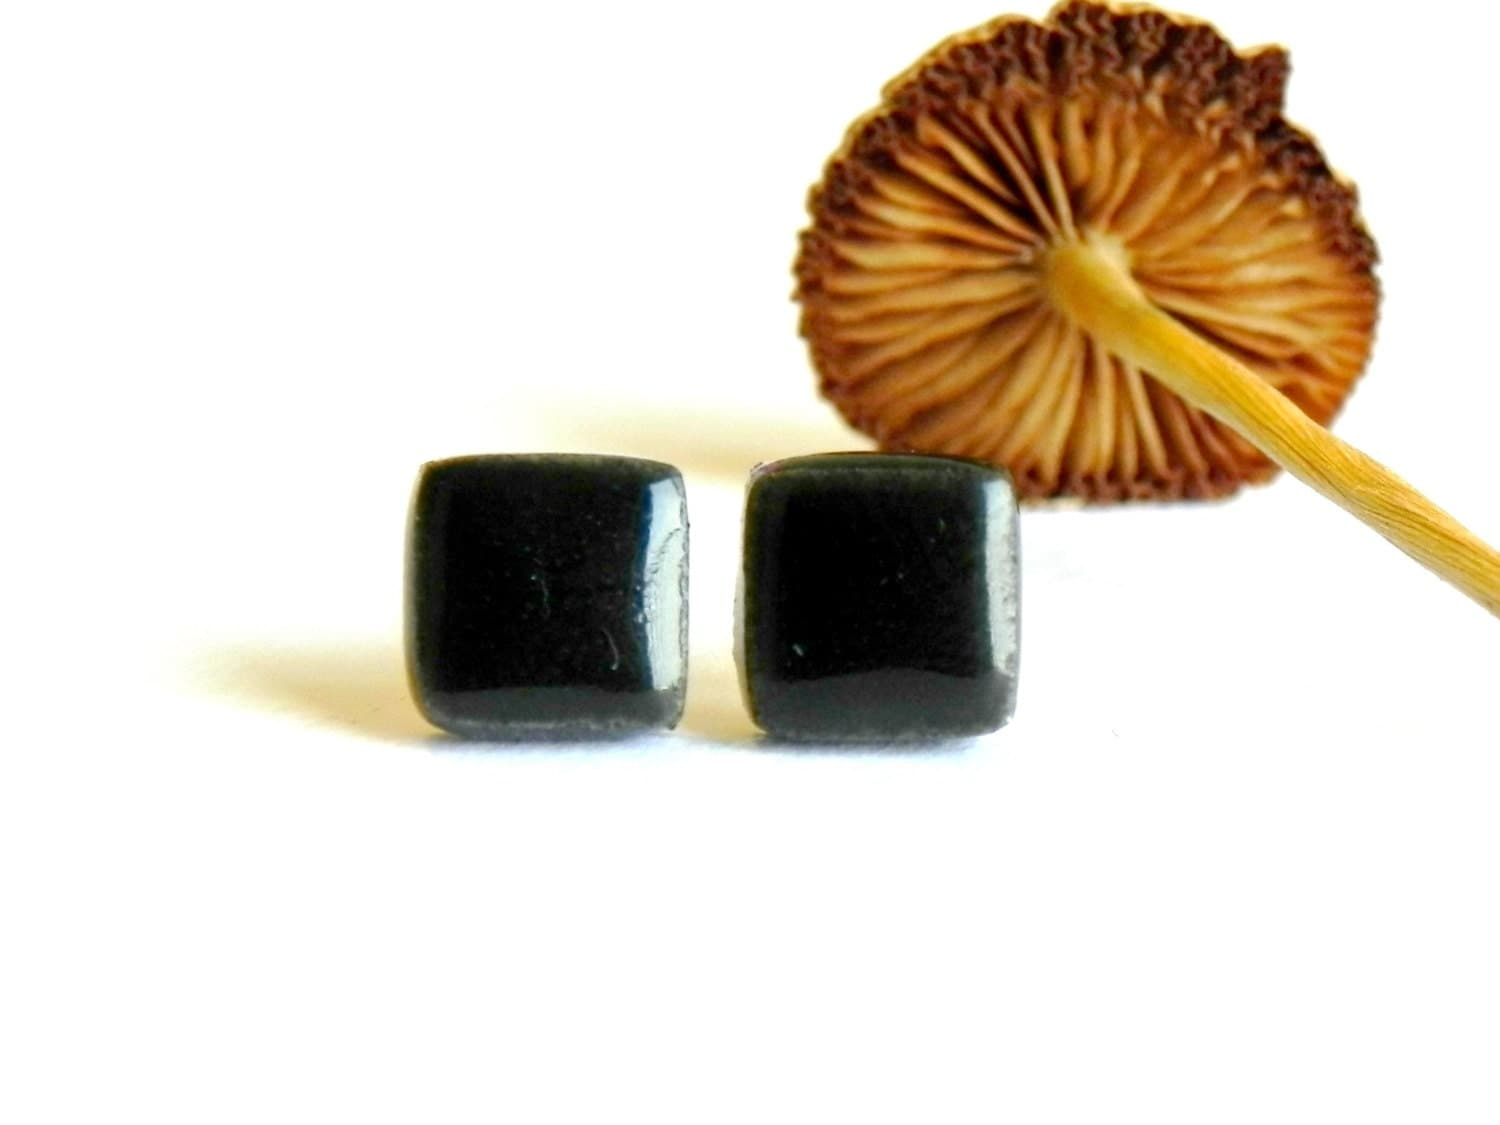 Unisex Black Stud Earrings Geometric Ceramic Men Hypoallergenic Posts - LemoneRouge